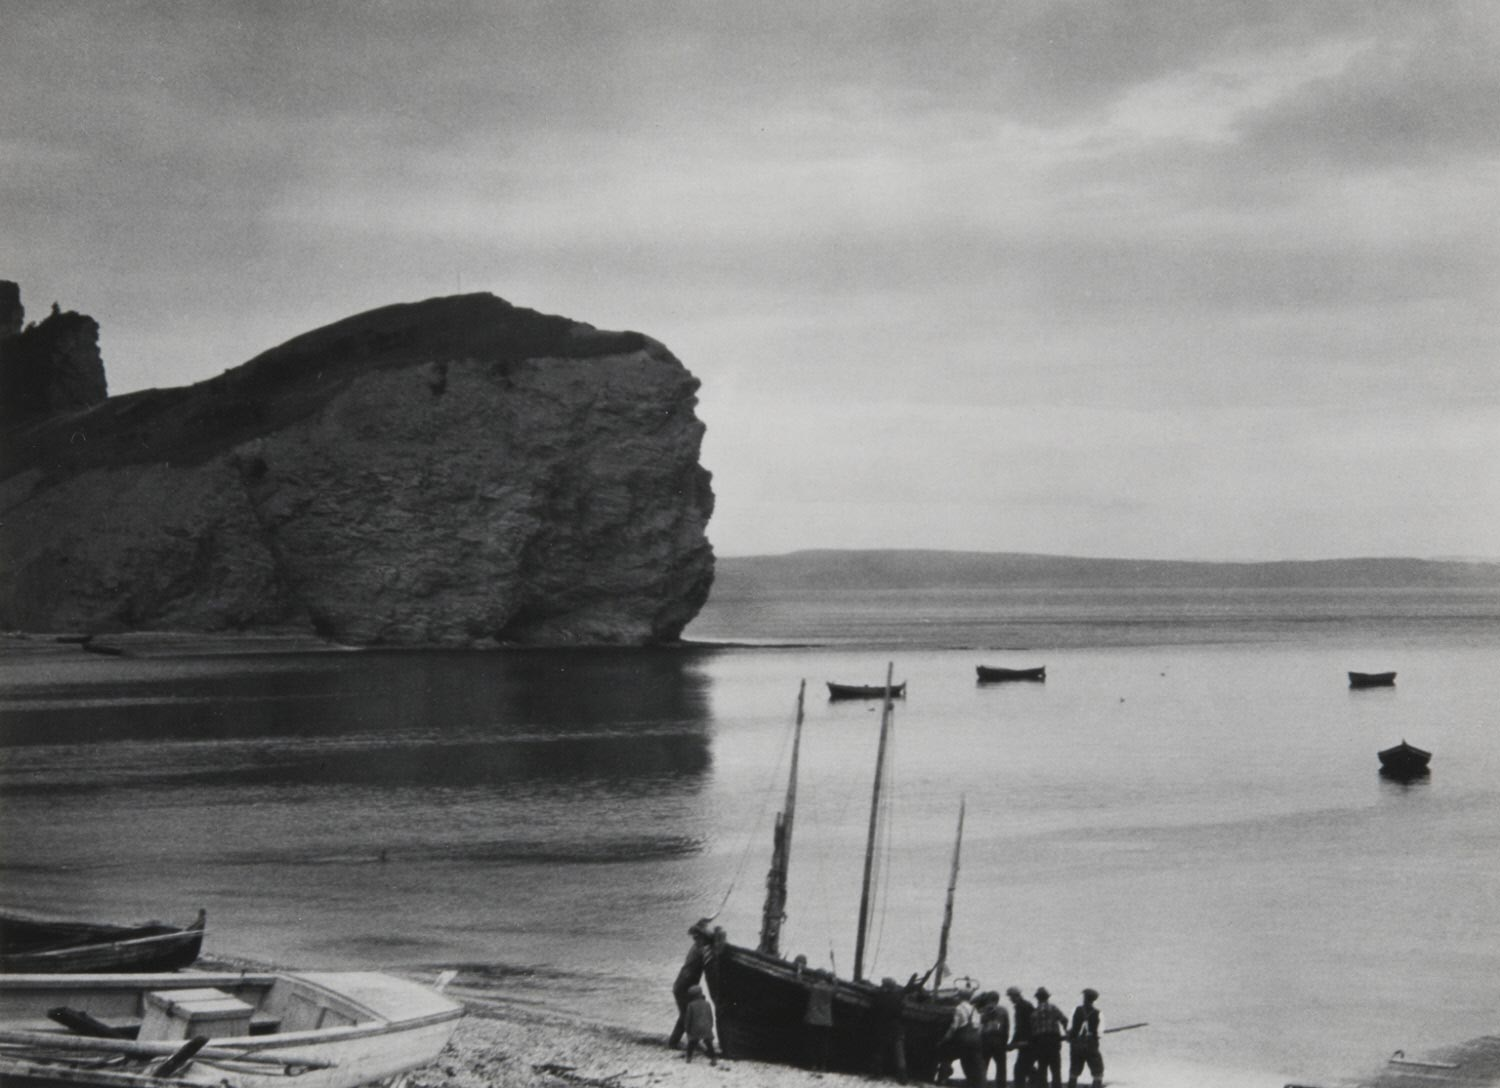 Beaching the Boat, Percé, Gaspé